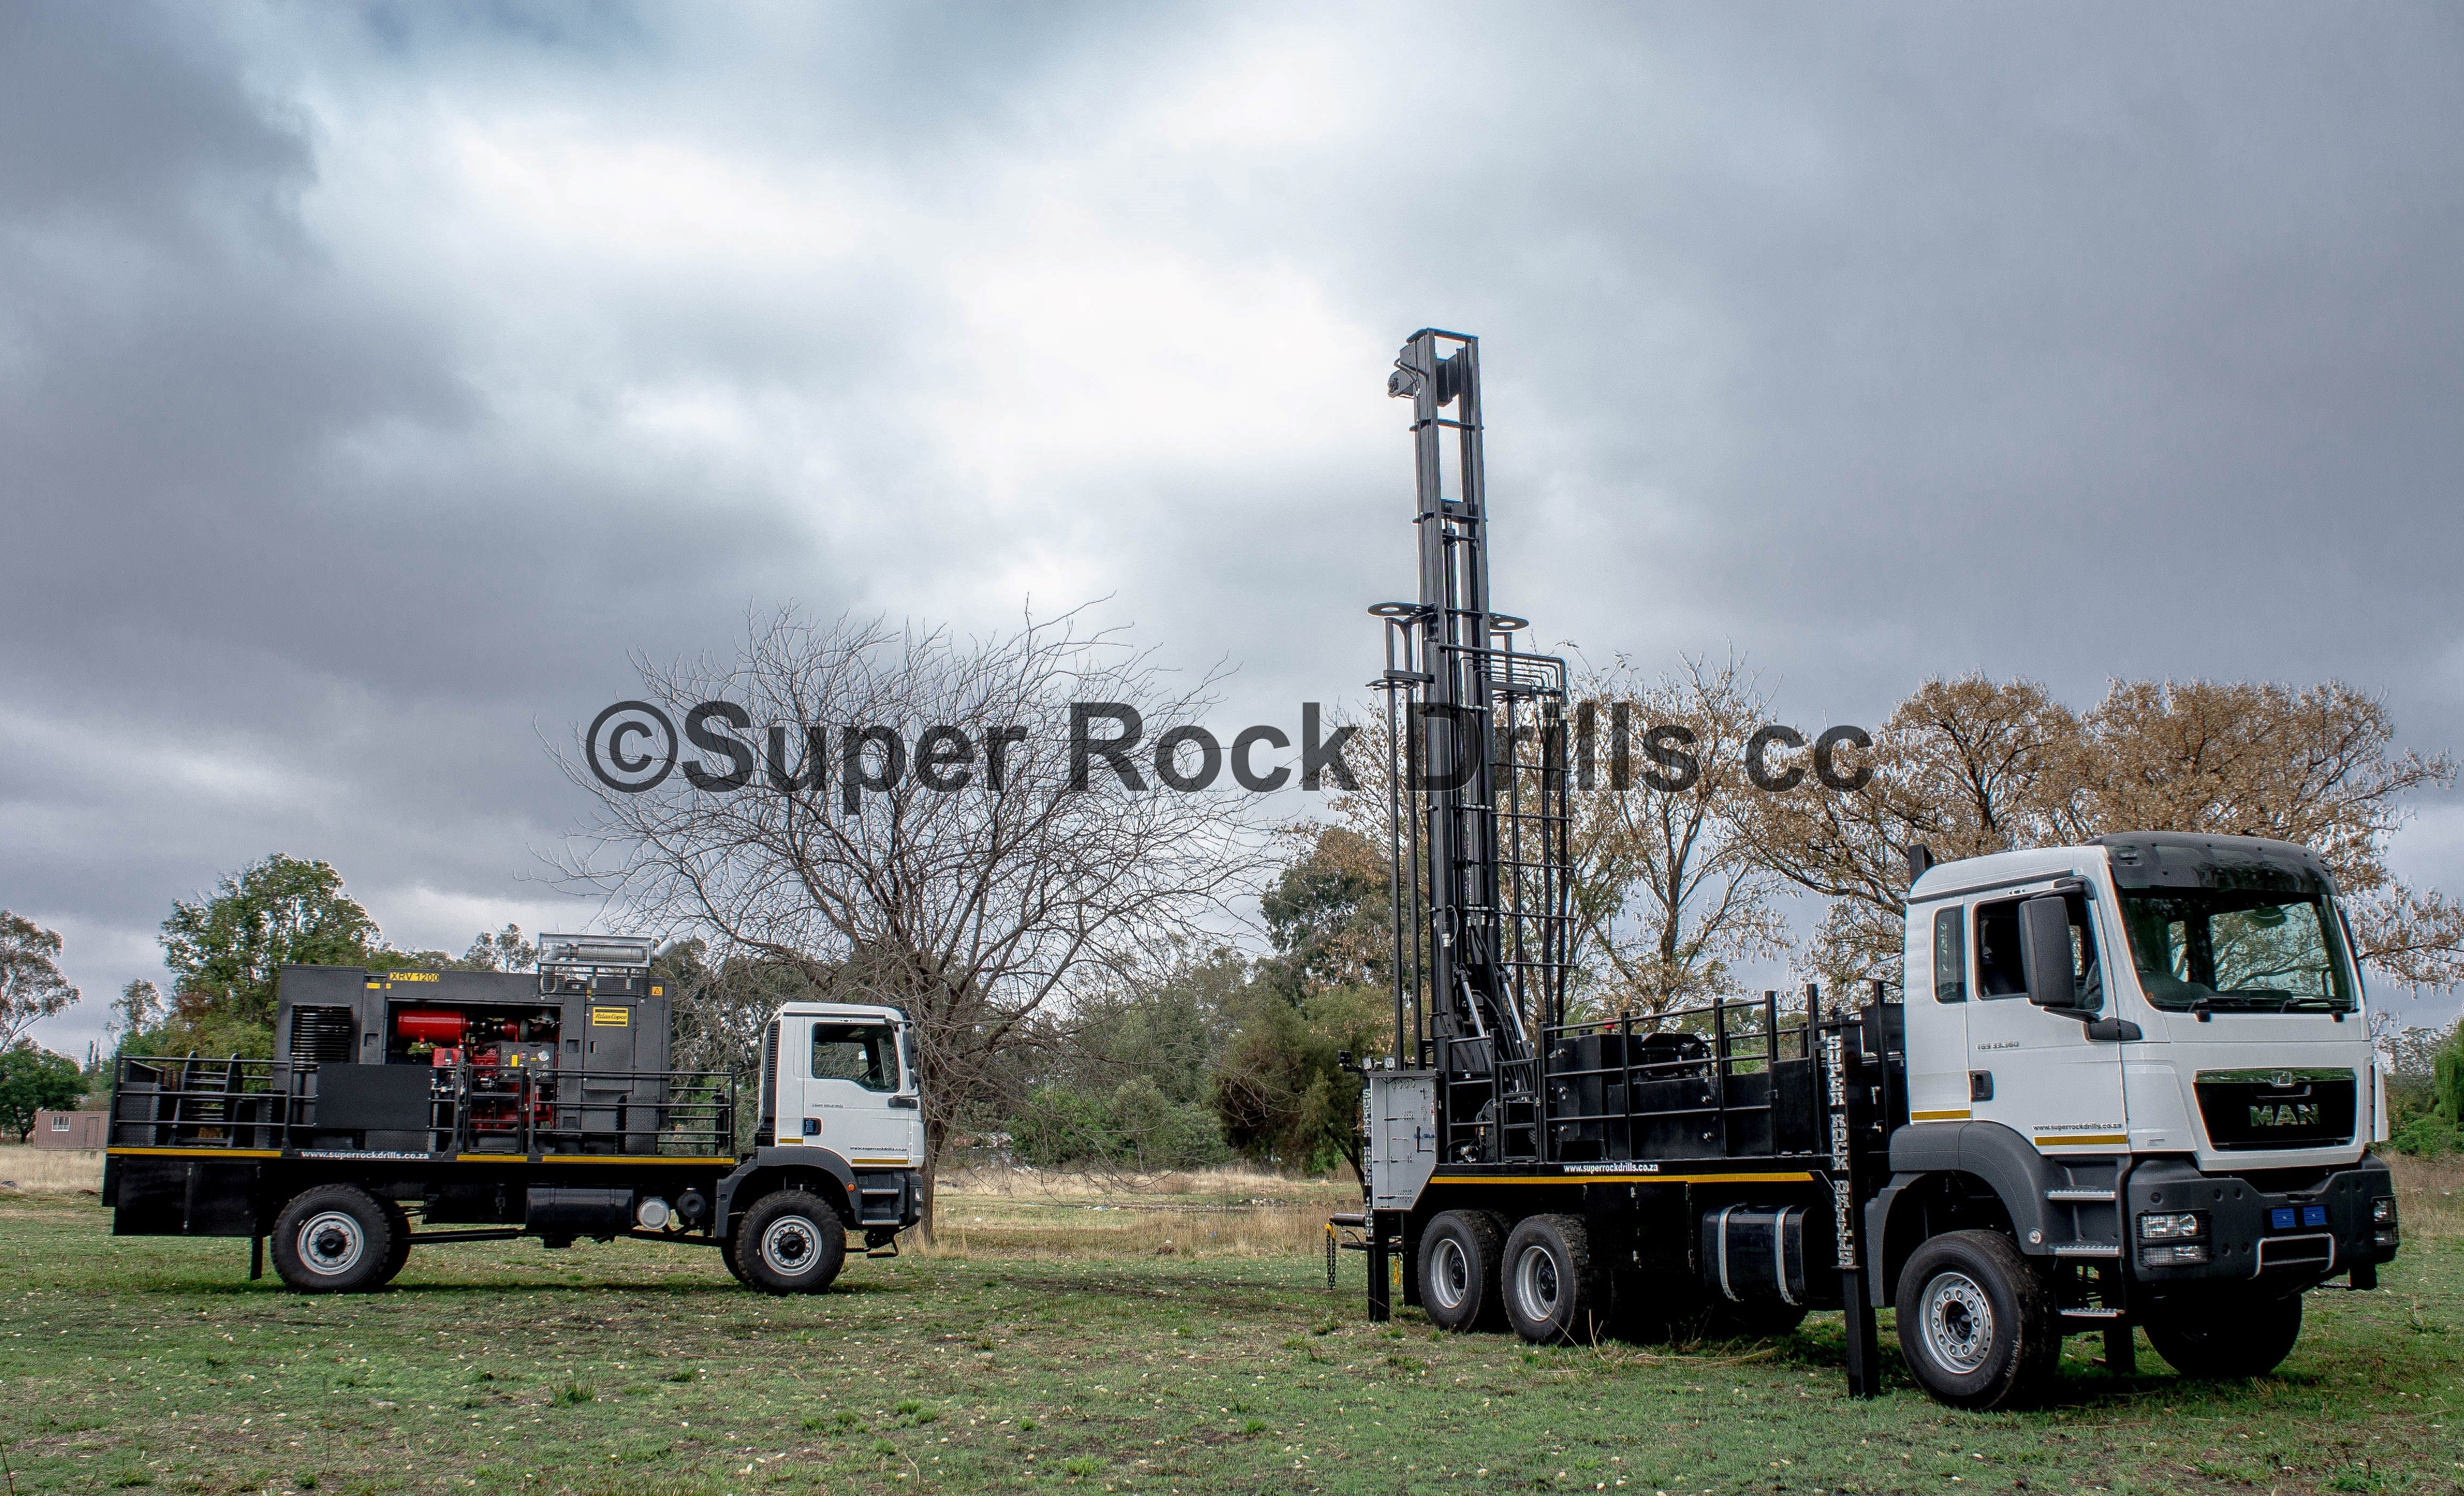 A Super Rock 1000 water well drill rig c/w separate truck